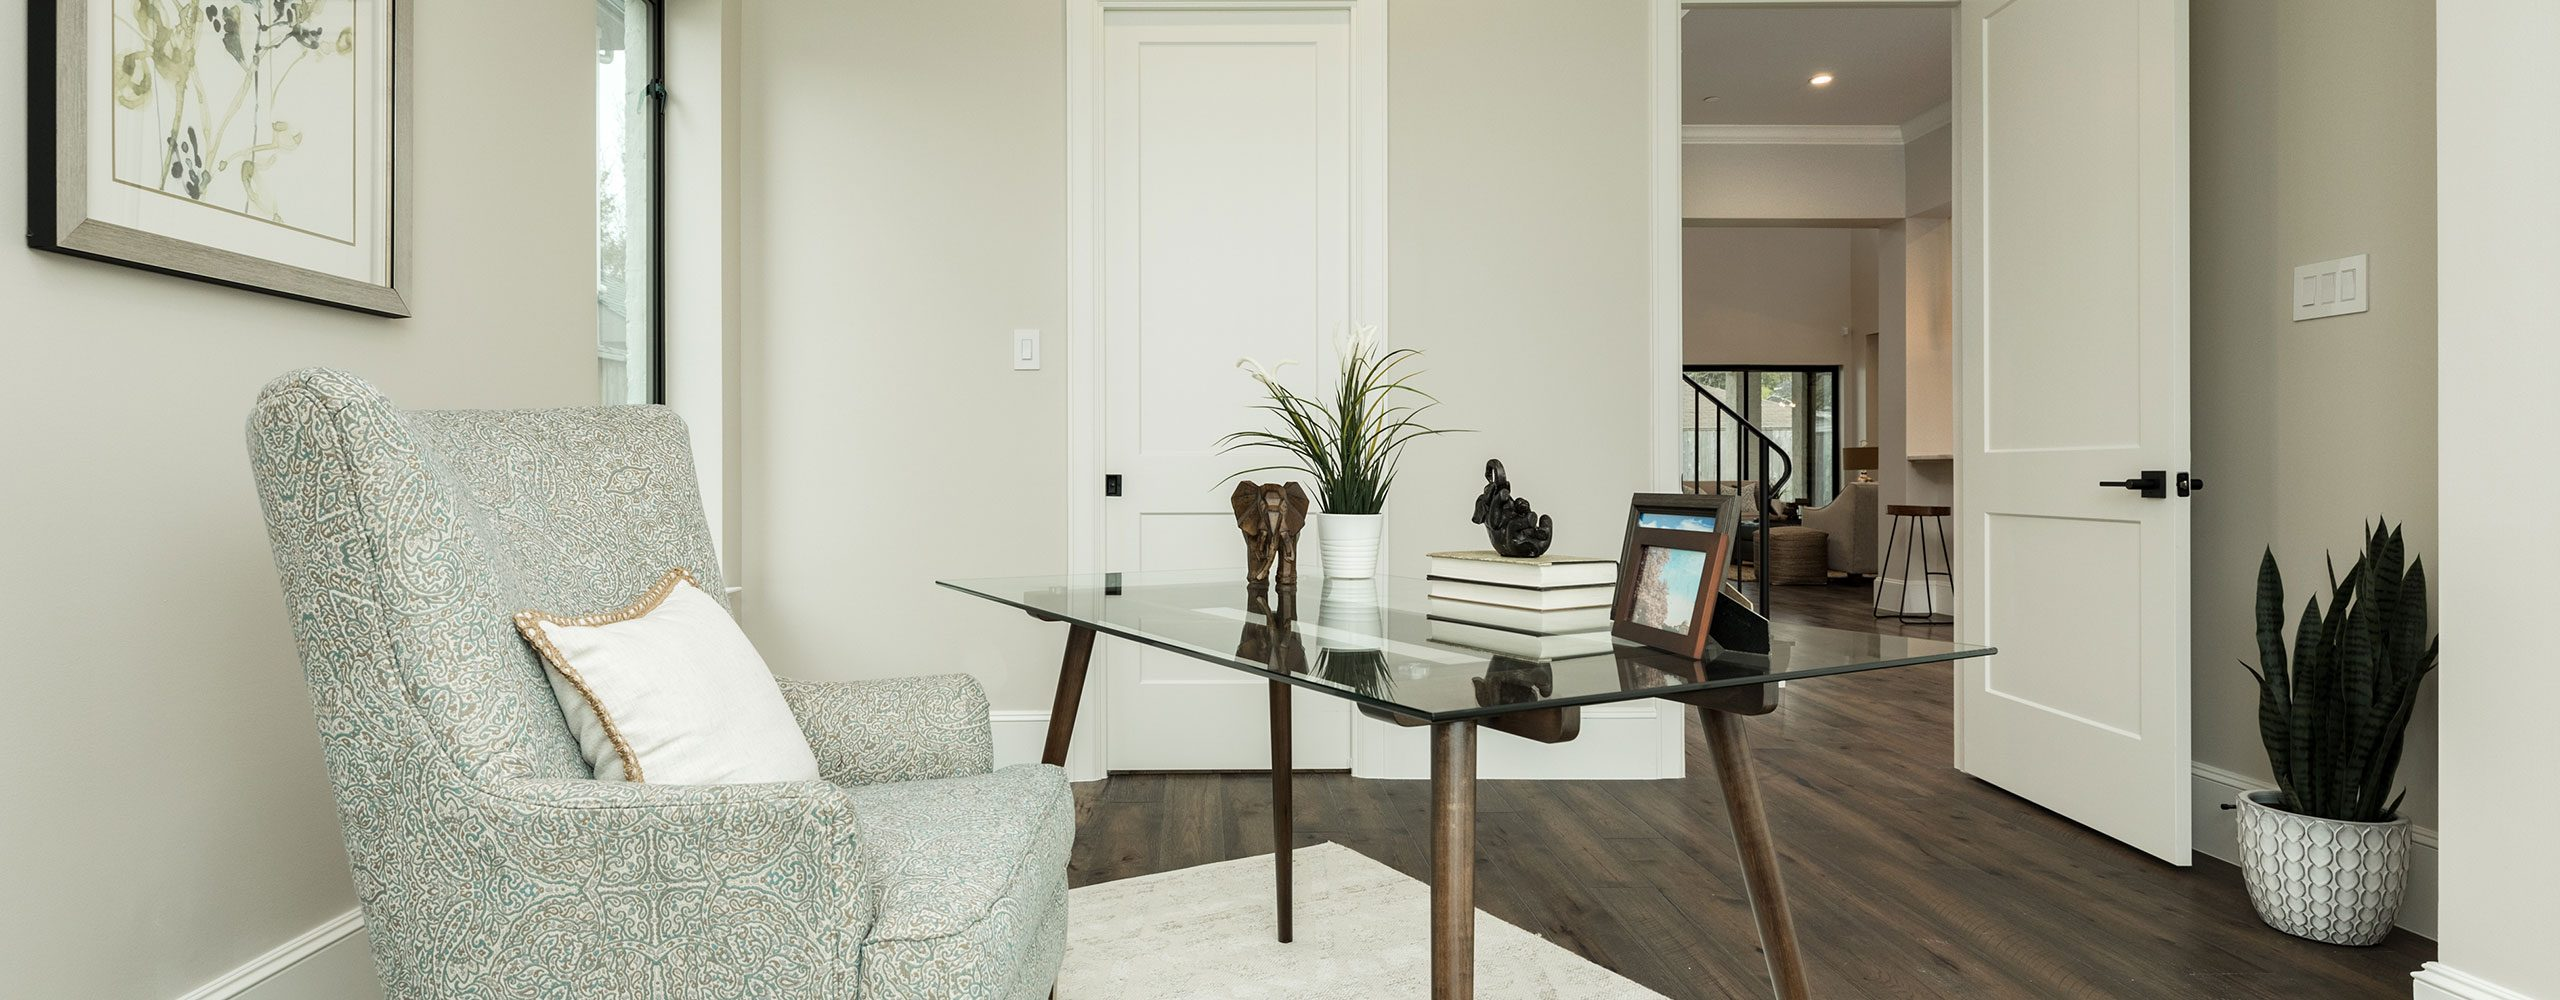 Home office staging in Houston metro area